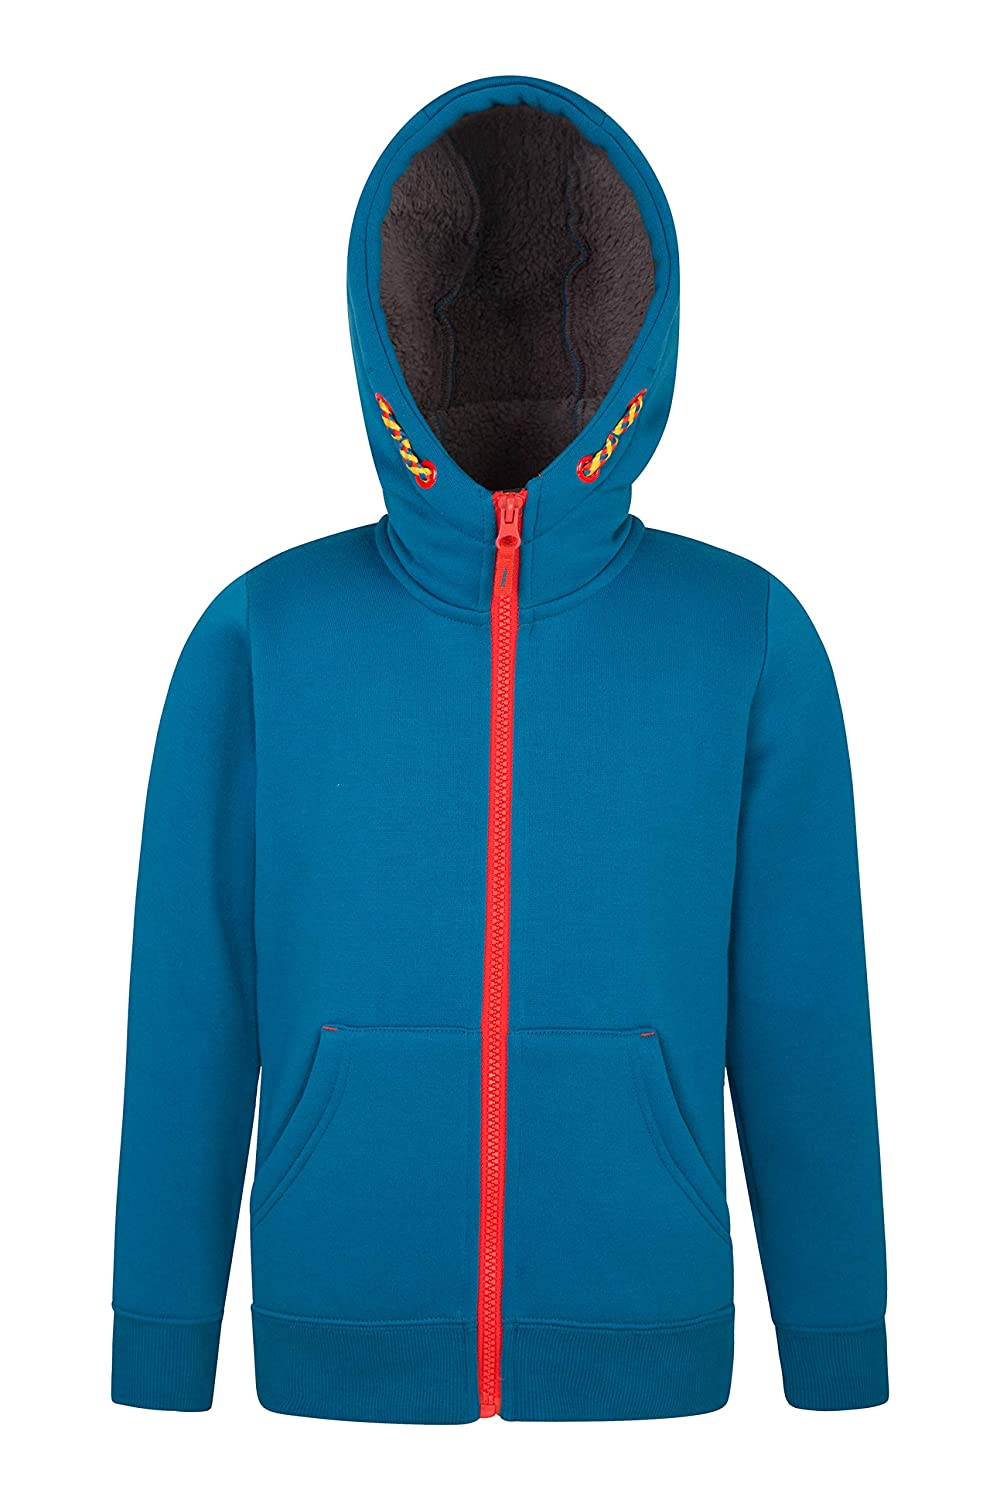 Mountain Warehouse Nordic Fur Lined Full Zip Hoody - Sherpa Fleece Lining Isotherm Fabric, Full-Zip & Front Pockets - Great Everyday Wear & Camping Trips